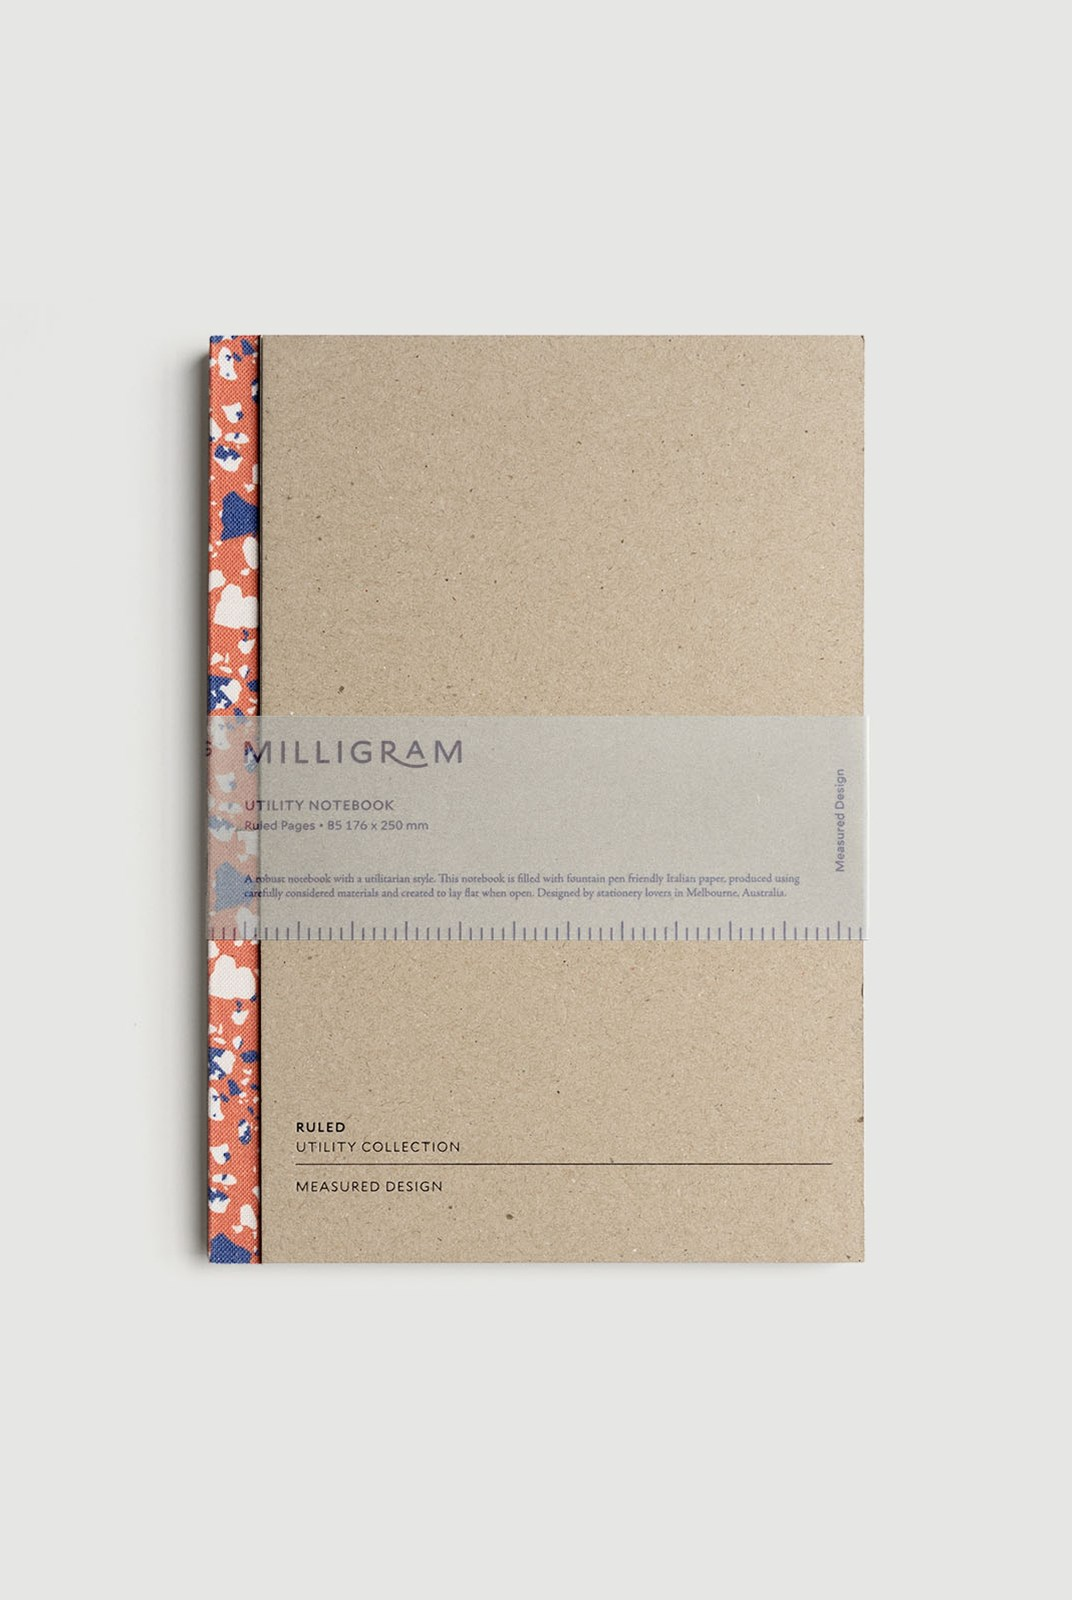 Milligram - Utility Notebook - Ruled - B5 - Terrazzo Pattern